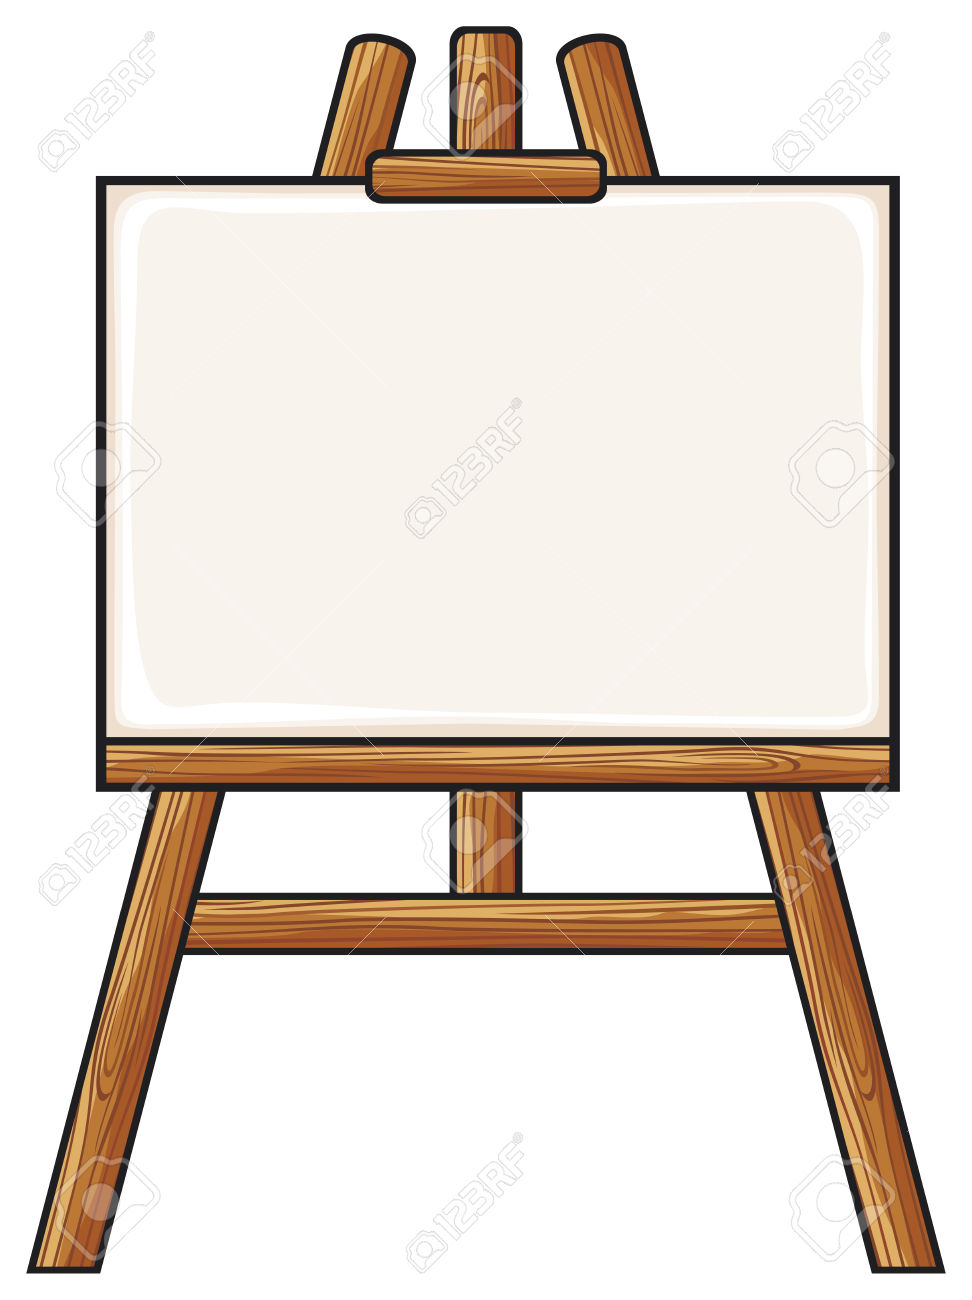 Painting Easel Clipart.